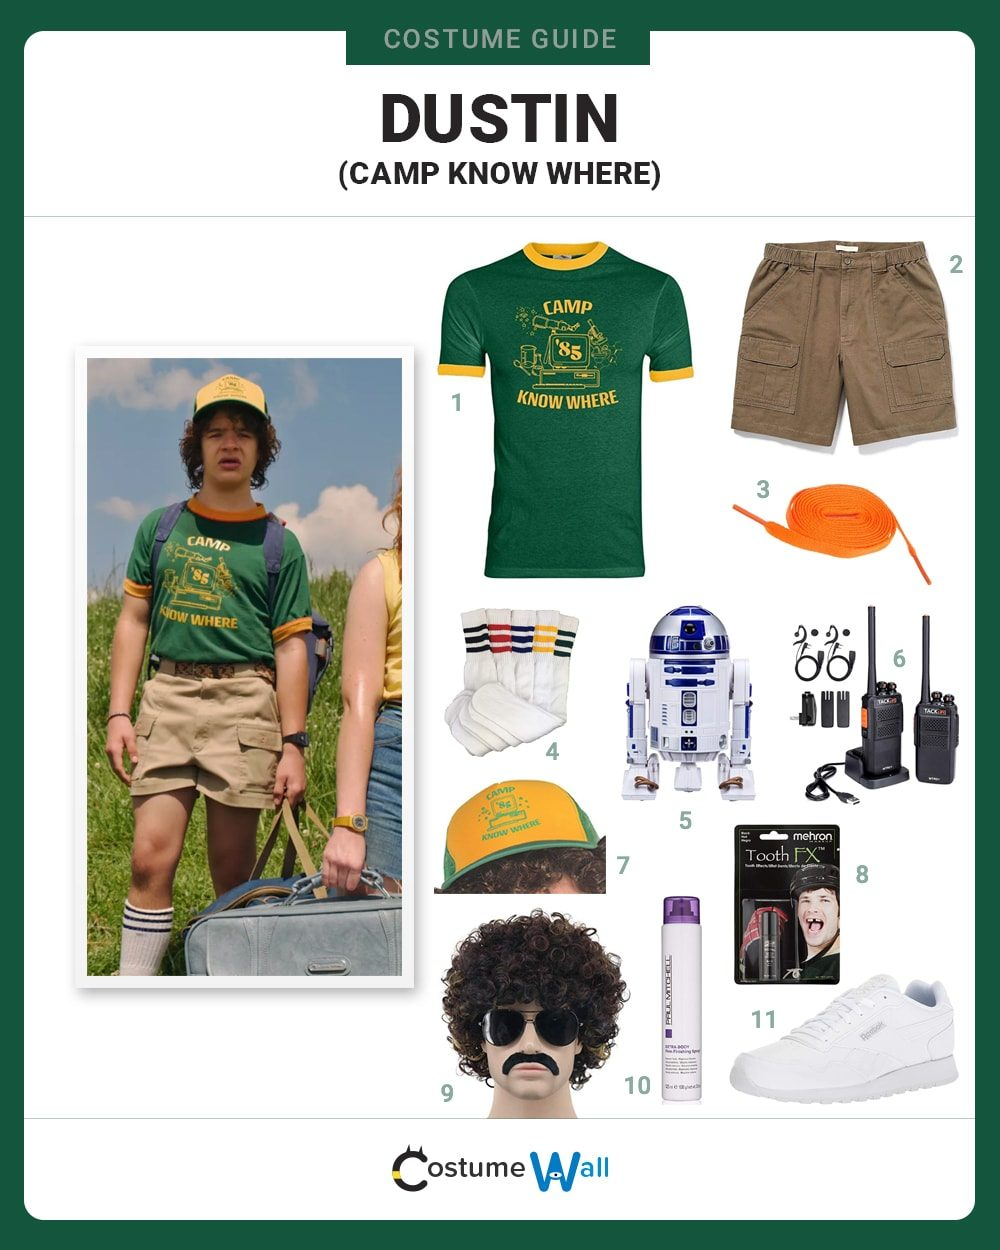 Dustin (Camp Know Where) Costume Guide